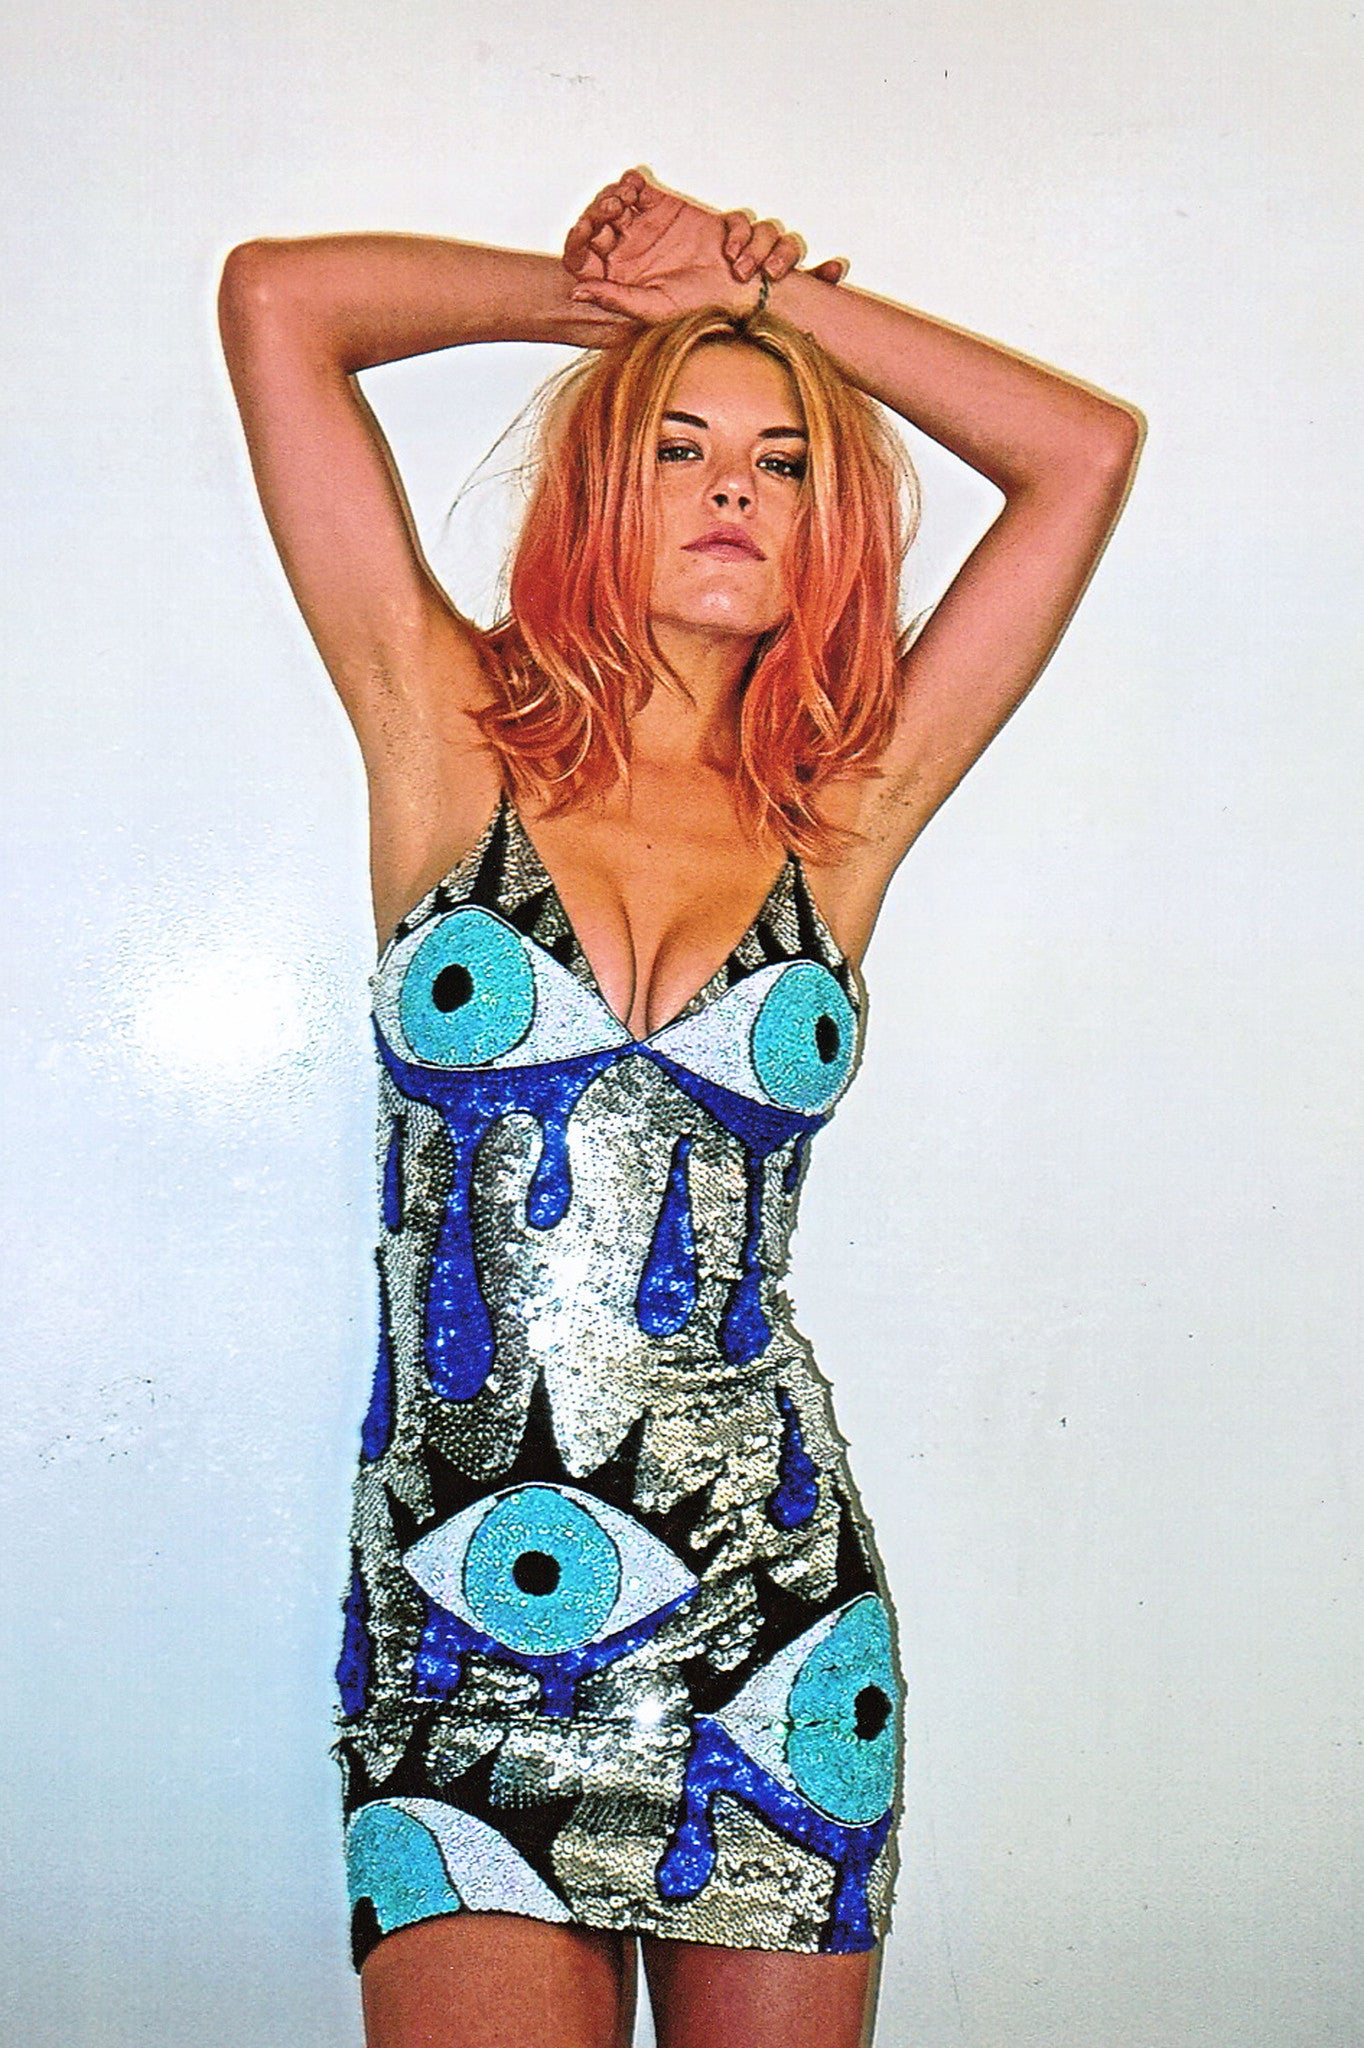 crying eye bralet mini dress, cyring eye mini dress, bralet mini dress, sequinned mini dress, bralet dress, sequinned eye, sequinned eyes, sequinned crying eyes, sequinned dress, sequinned bralet mini, sequins, crying, eyes, evil eye crying, eye dress, eyes, blue, silver, tears, discount universe, di$count universe, disco, mini dress